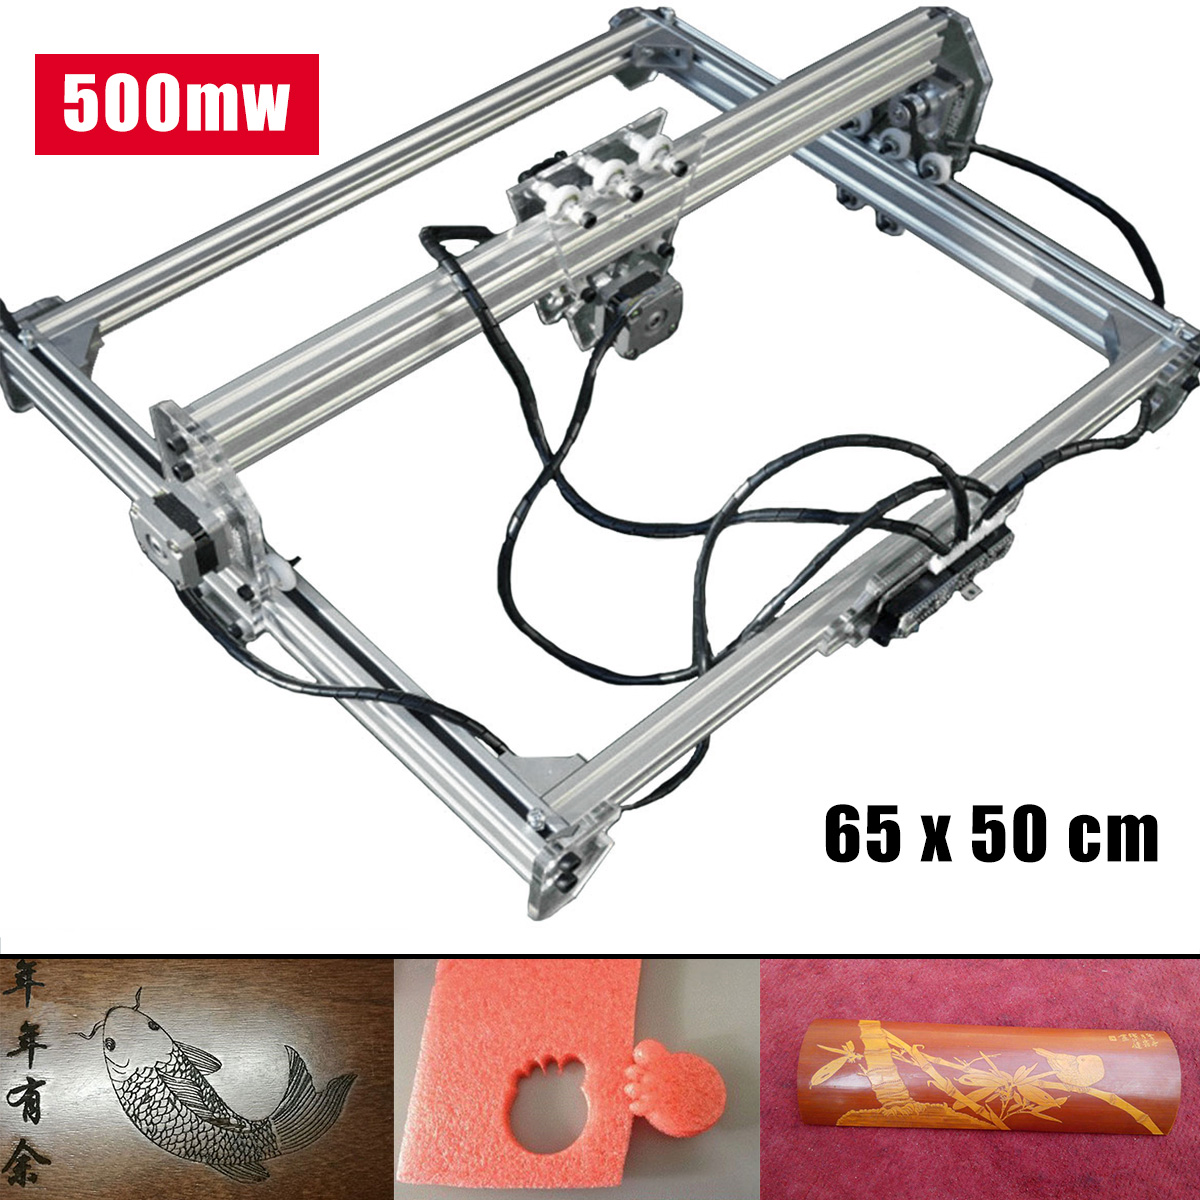 500MW 65x50cm Blue Laser Engraver Cutter Carver Printer Carving Engraving Machine